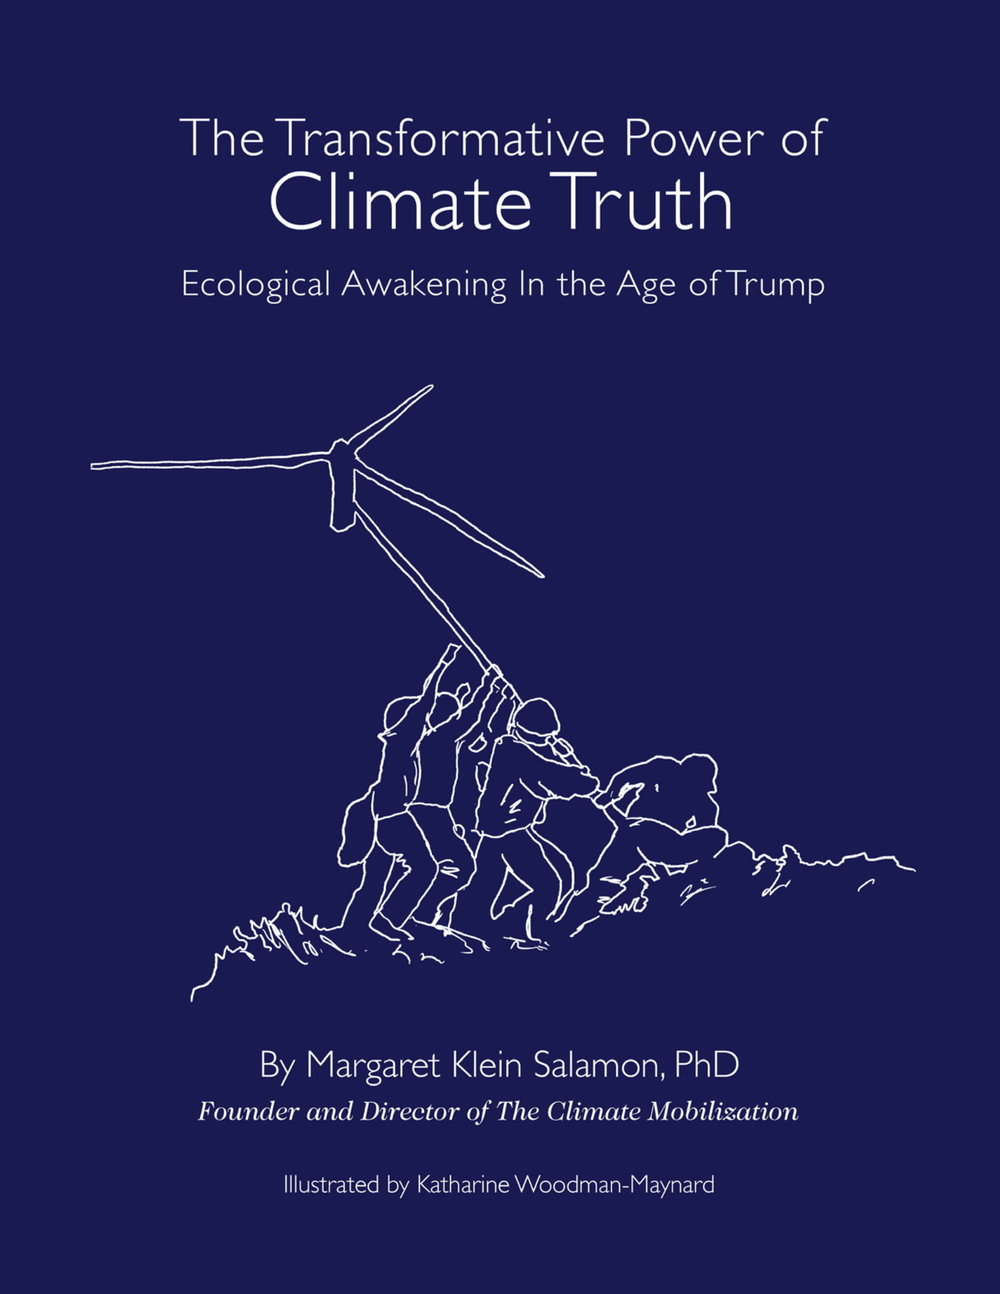 The Transformative Power of Climate Truth_ Ecological Awakening in the Trump Age-01.jpg